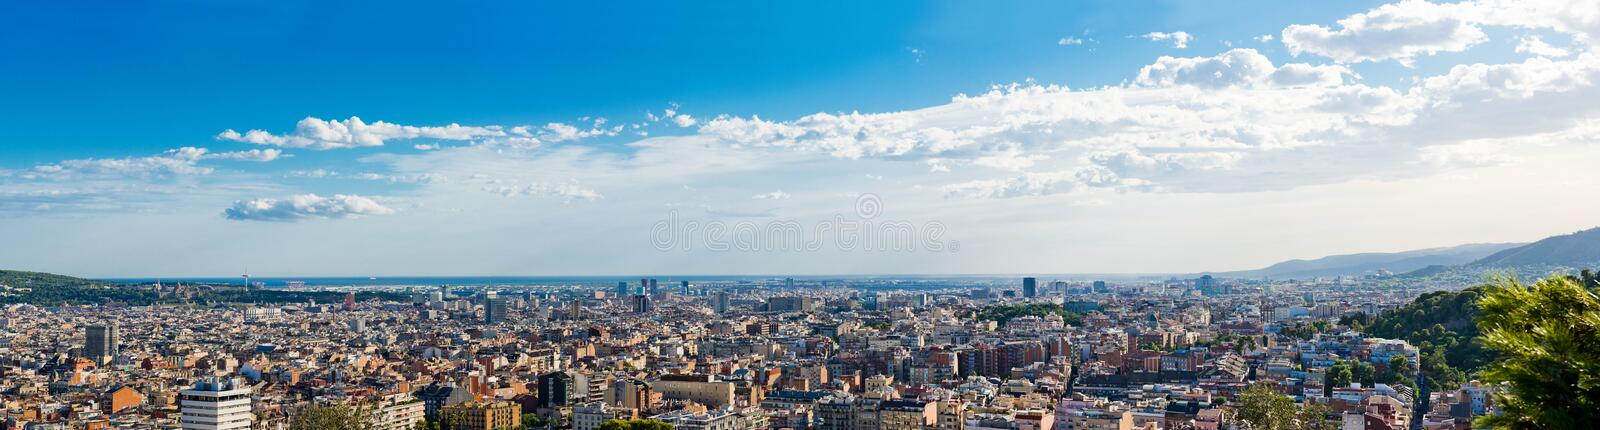 Download Cityscape Of Barcelona. Spain. Royalty Free Stock Photography - Image: 27866357